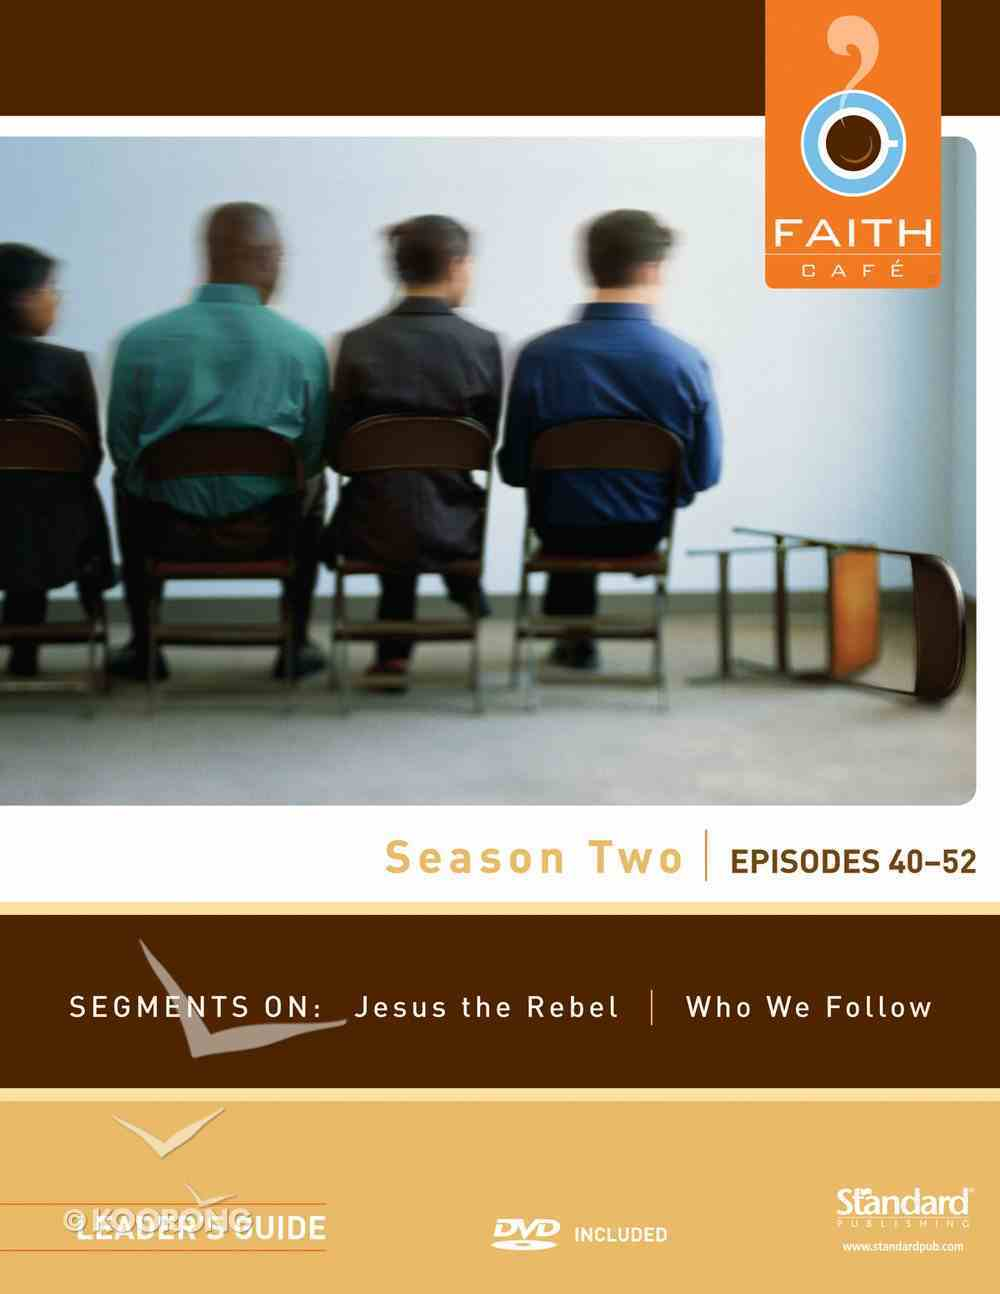 Faith Cafe: Season Two Episodes 40-52 (Leader's Guide) Paperback